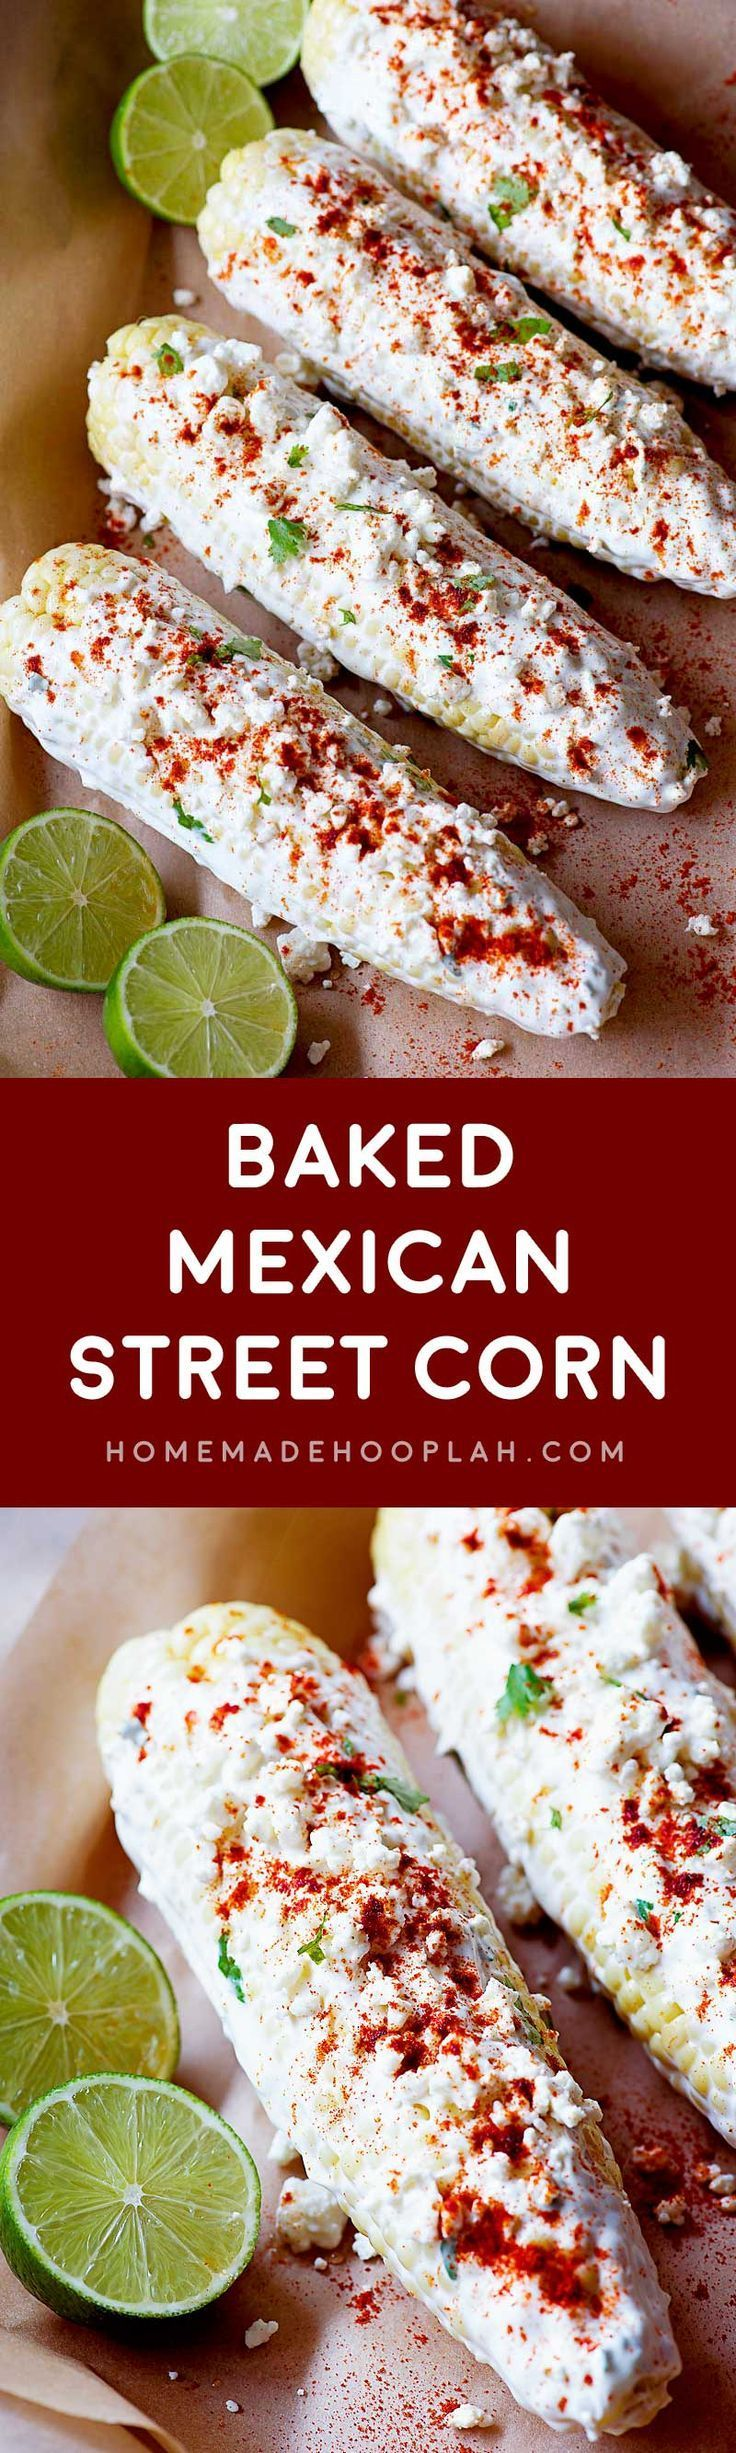 Baked Mexican Street Corn! Classic Elotes flavored with feta cheese and smoked paprika. The corn is also baked, making it easy to make this classic summer food year round! | http://HomemadeHooplah.com